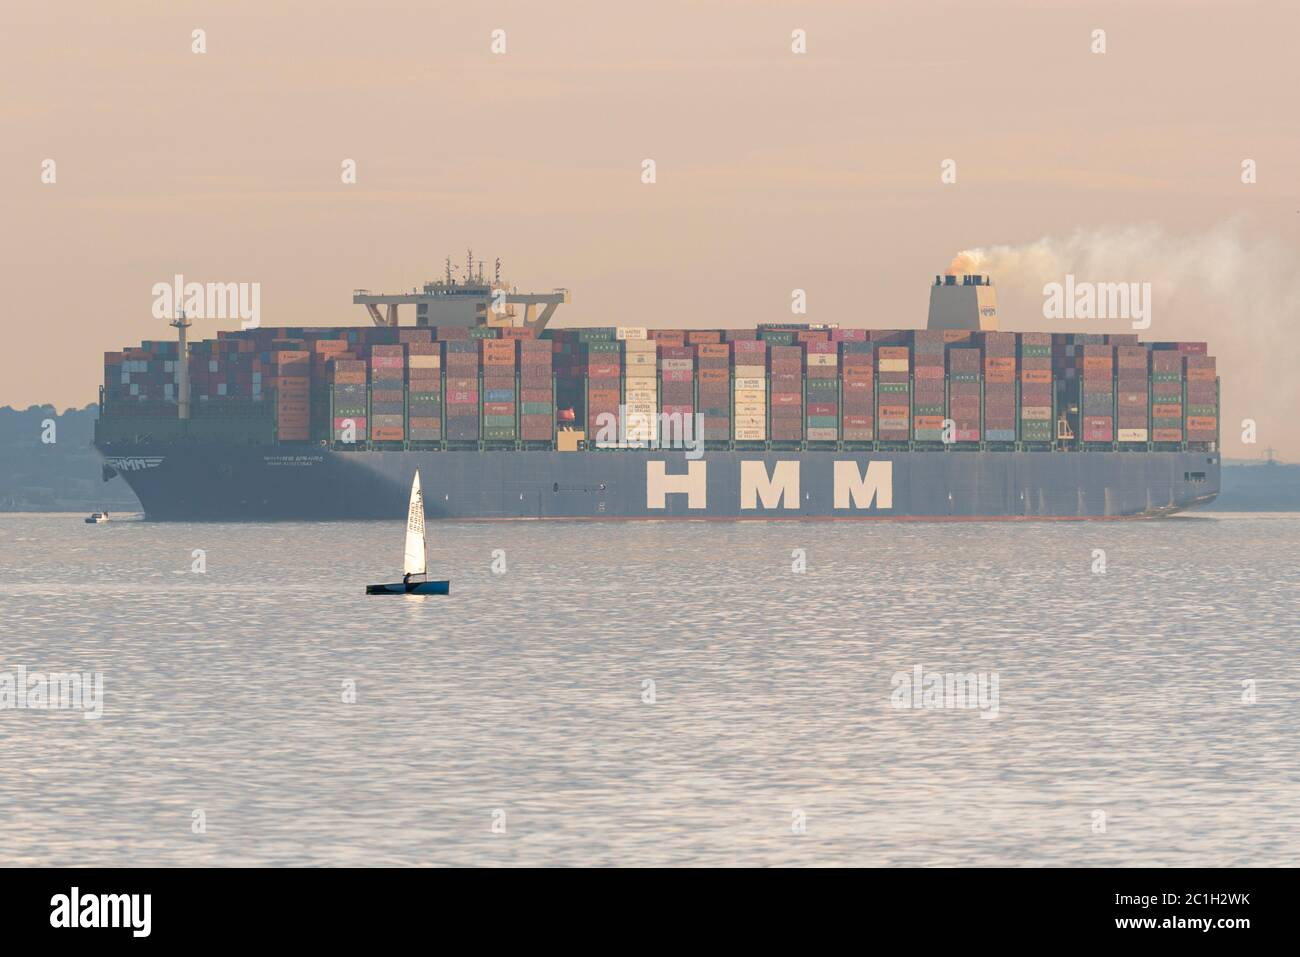 southend-on-sea-essex-uk-15th-jun-2020-hyundai-merchant-marine-hmm-algeciras-is-seen-in-the-evening-passing-southend-on-sea-in-the-thames-estuary-having-departed-dp-world-london-gateway-port-bound-for-the-north-sea-the-algeciras-is-the-largest-container-ship-ever-built-and-arrived-in-the-uk-on-its-first-visit-since-launch-with-goods-from-the-far-east-via-european-ports-such-routes-will-be-its-regular-trade-2C1H2WK.jpg